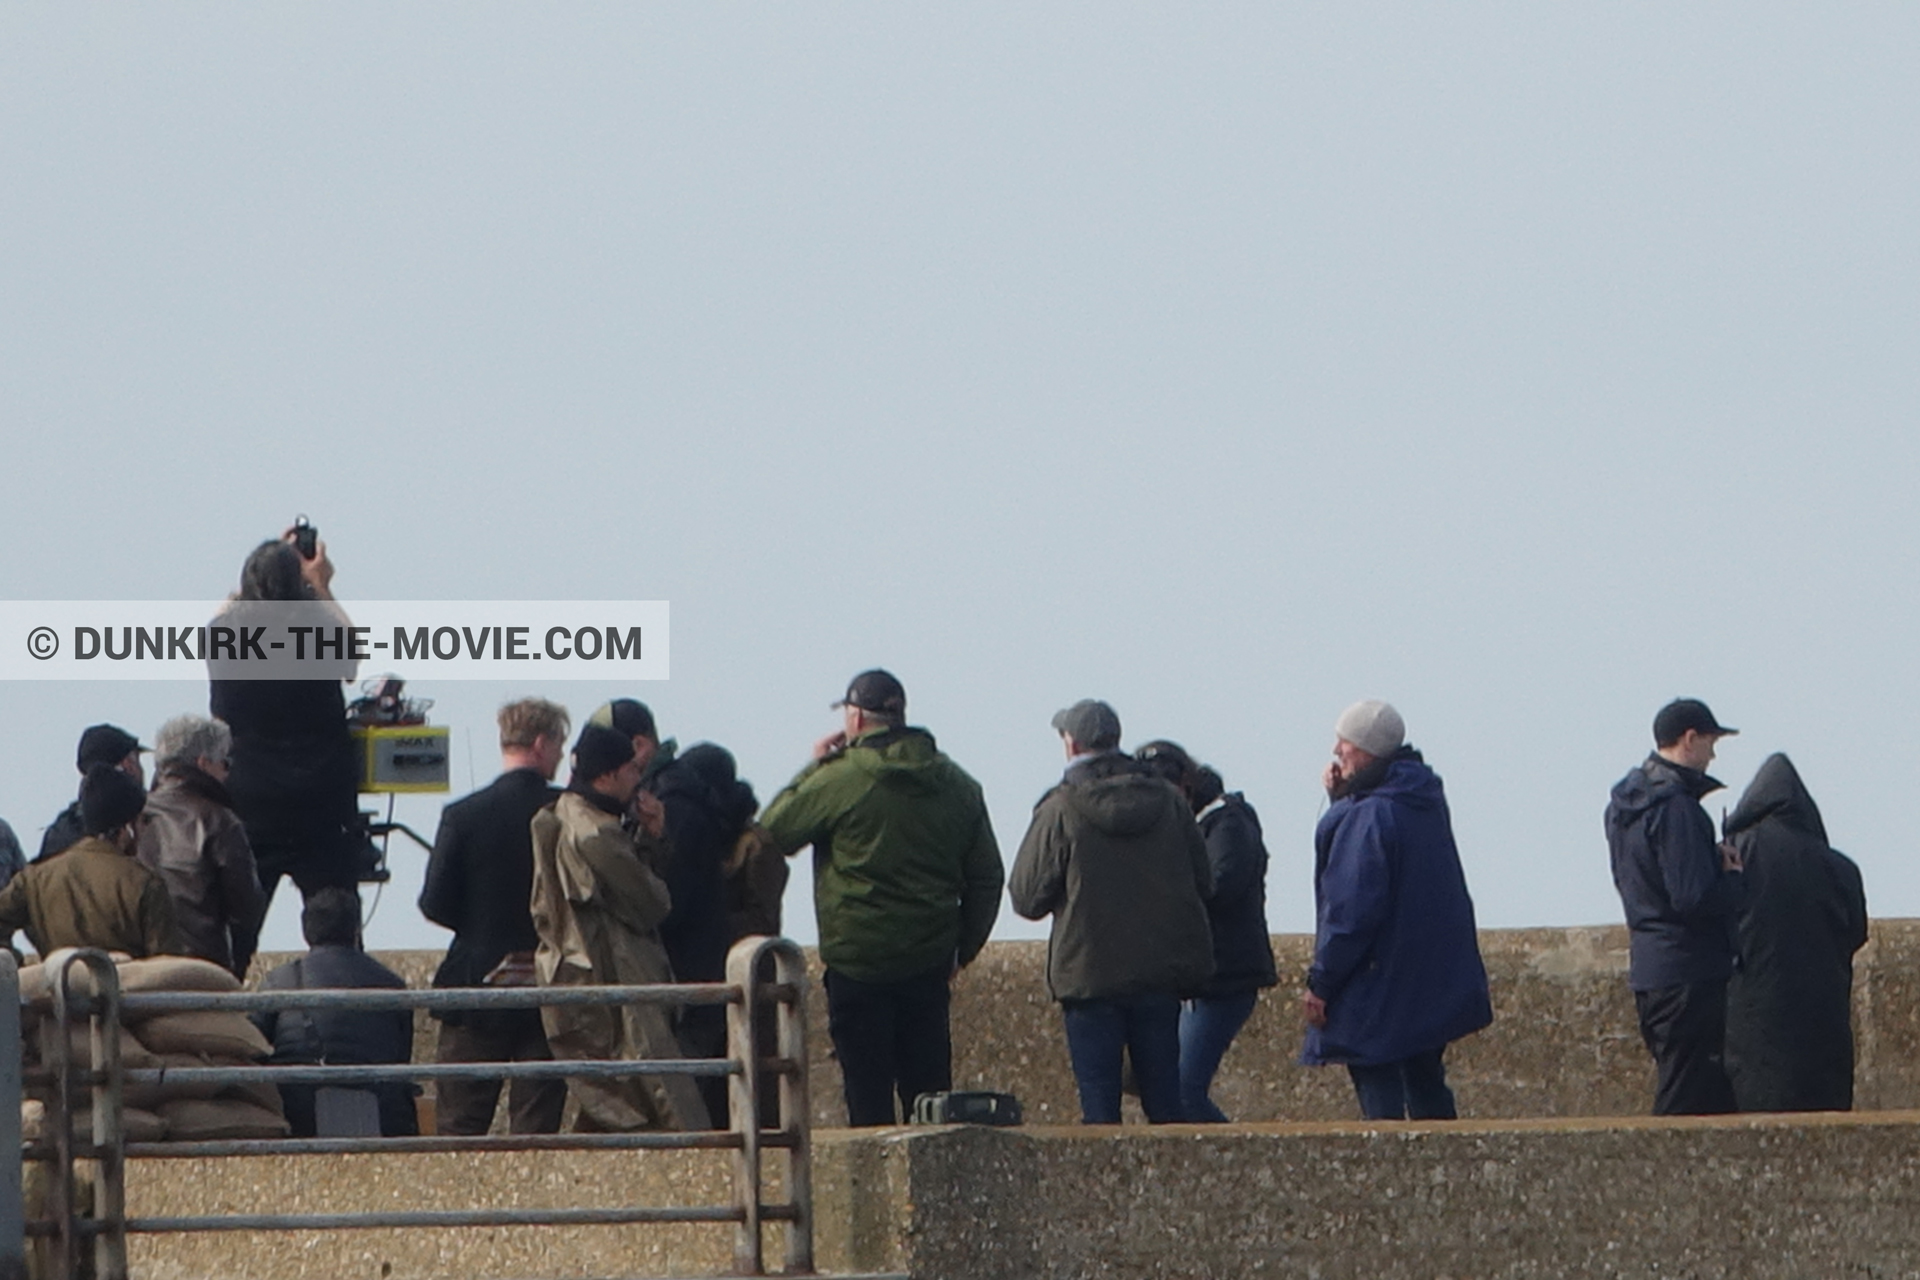 Photo on canvas number 493, of the filming of the film Dunkirk